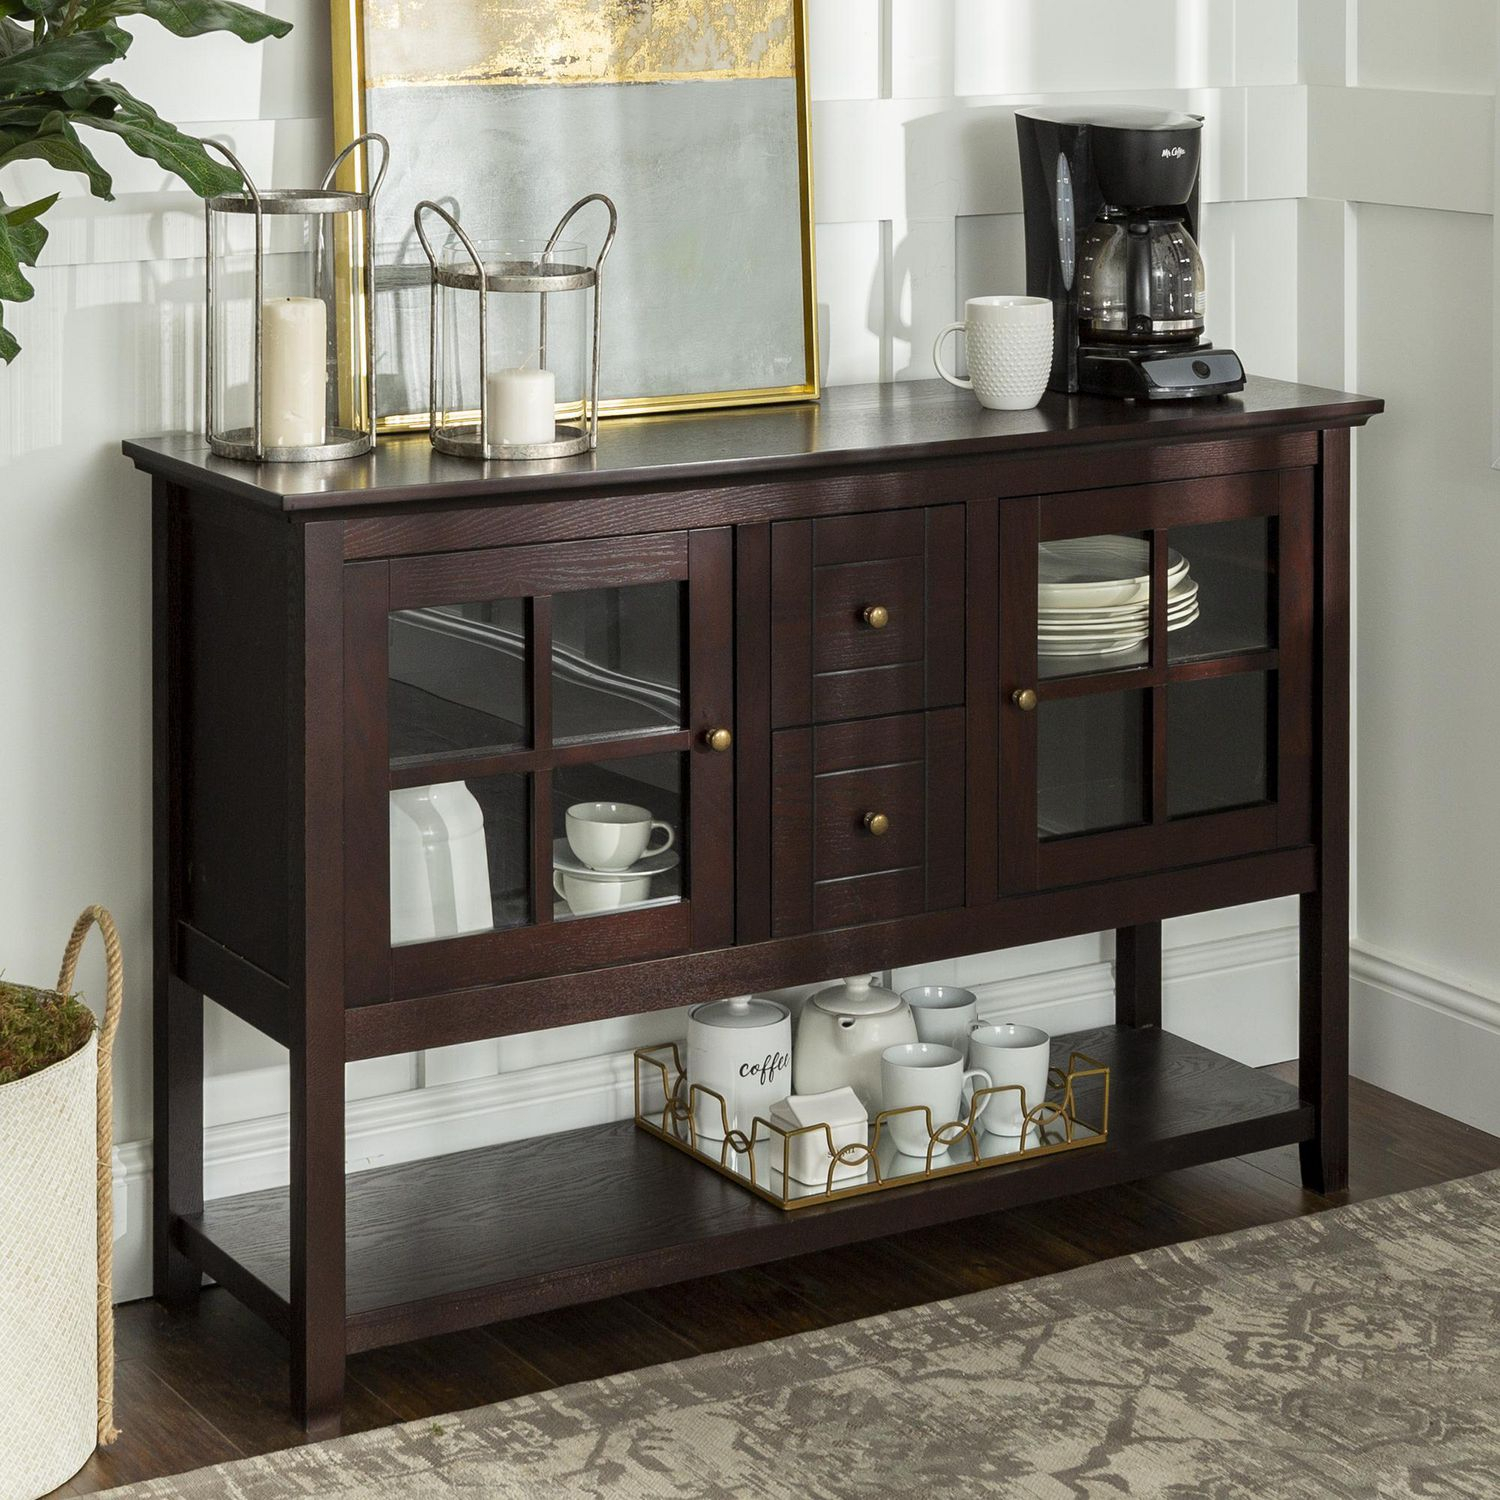 We Furniture Walker Edison Espresso Wood Console Table Buffet Tv Stand Inside Espresso Wood Multi Use Buffets (View 8 of 30)